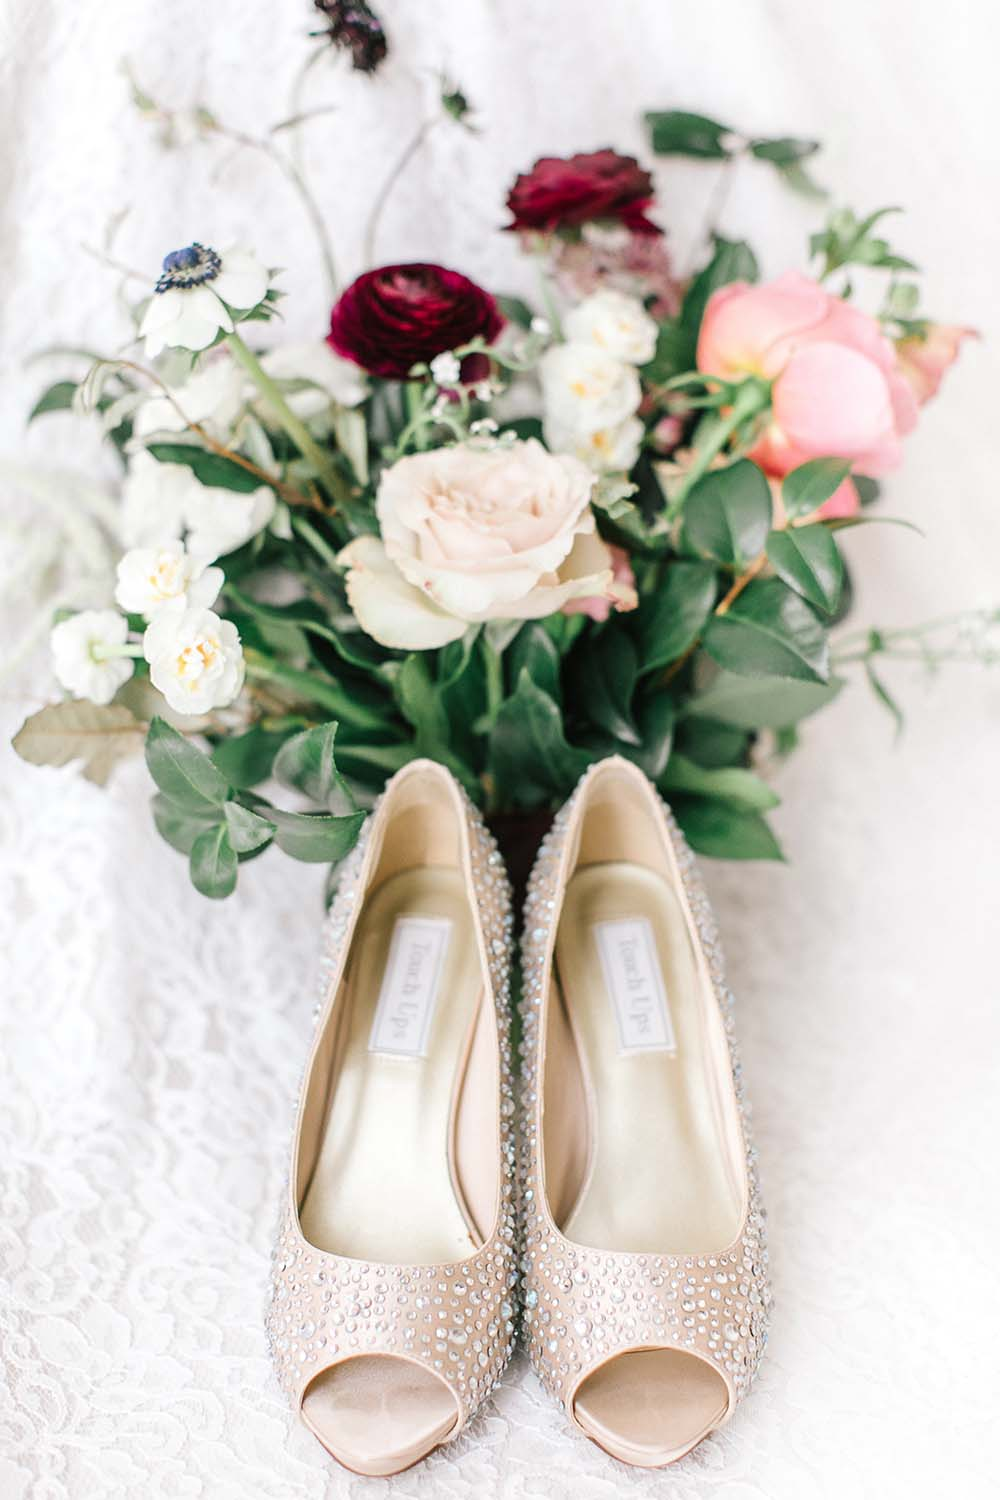 A Rustic Glam Wedding in Vaughan, Ontario - Shoes and Bouquet